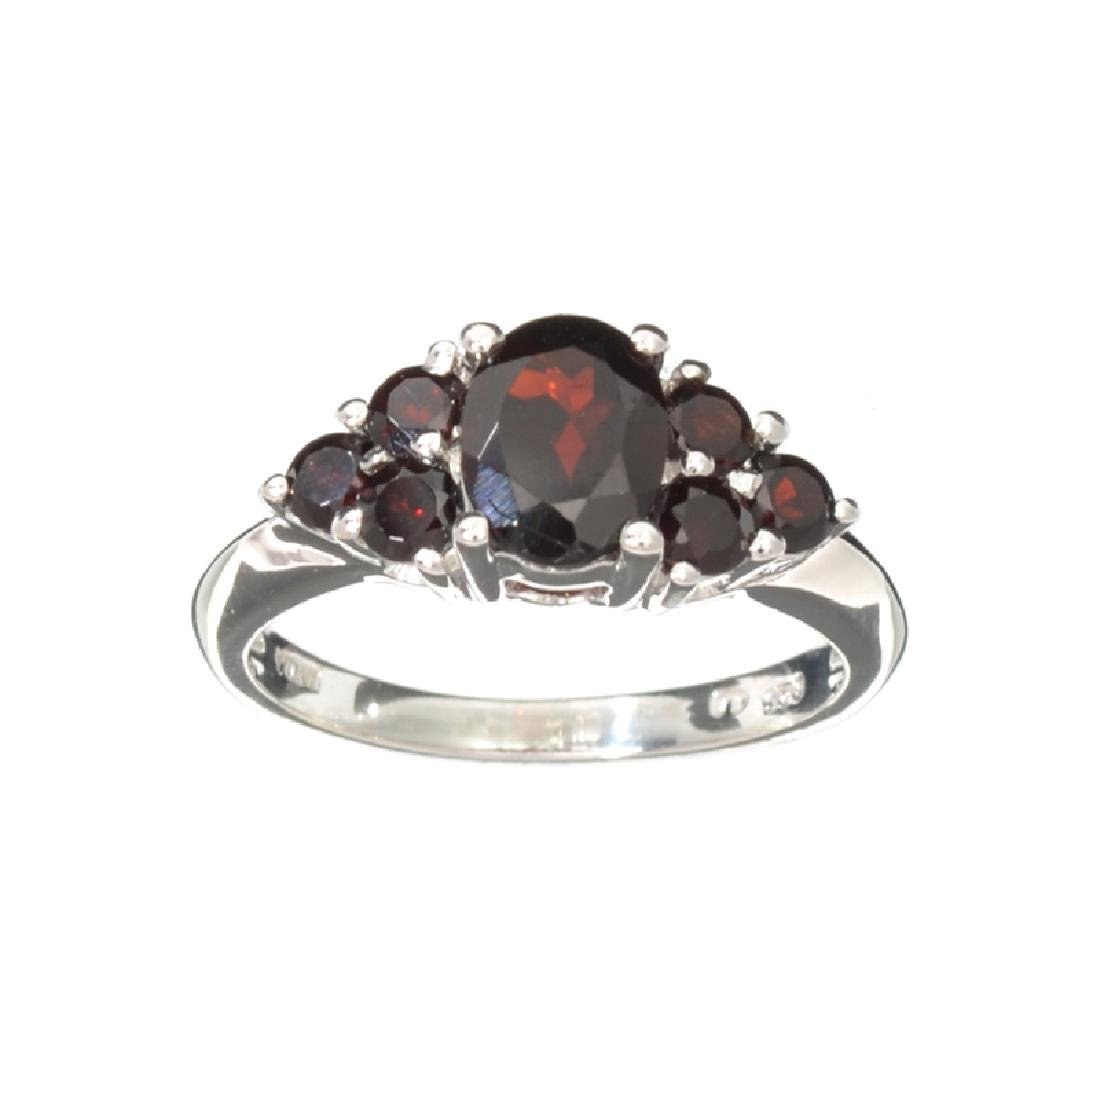 APP: 0.3k Fine Jewelry 2.40CT Almandite Garnet And